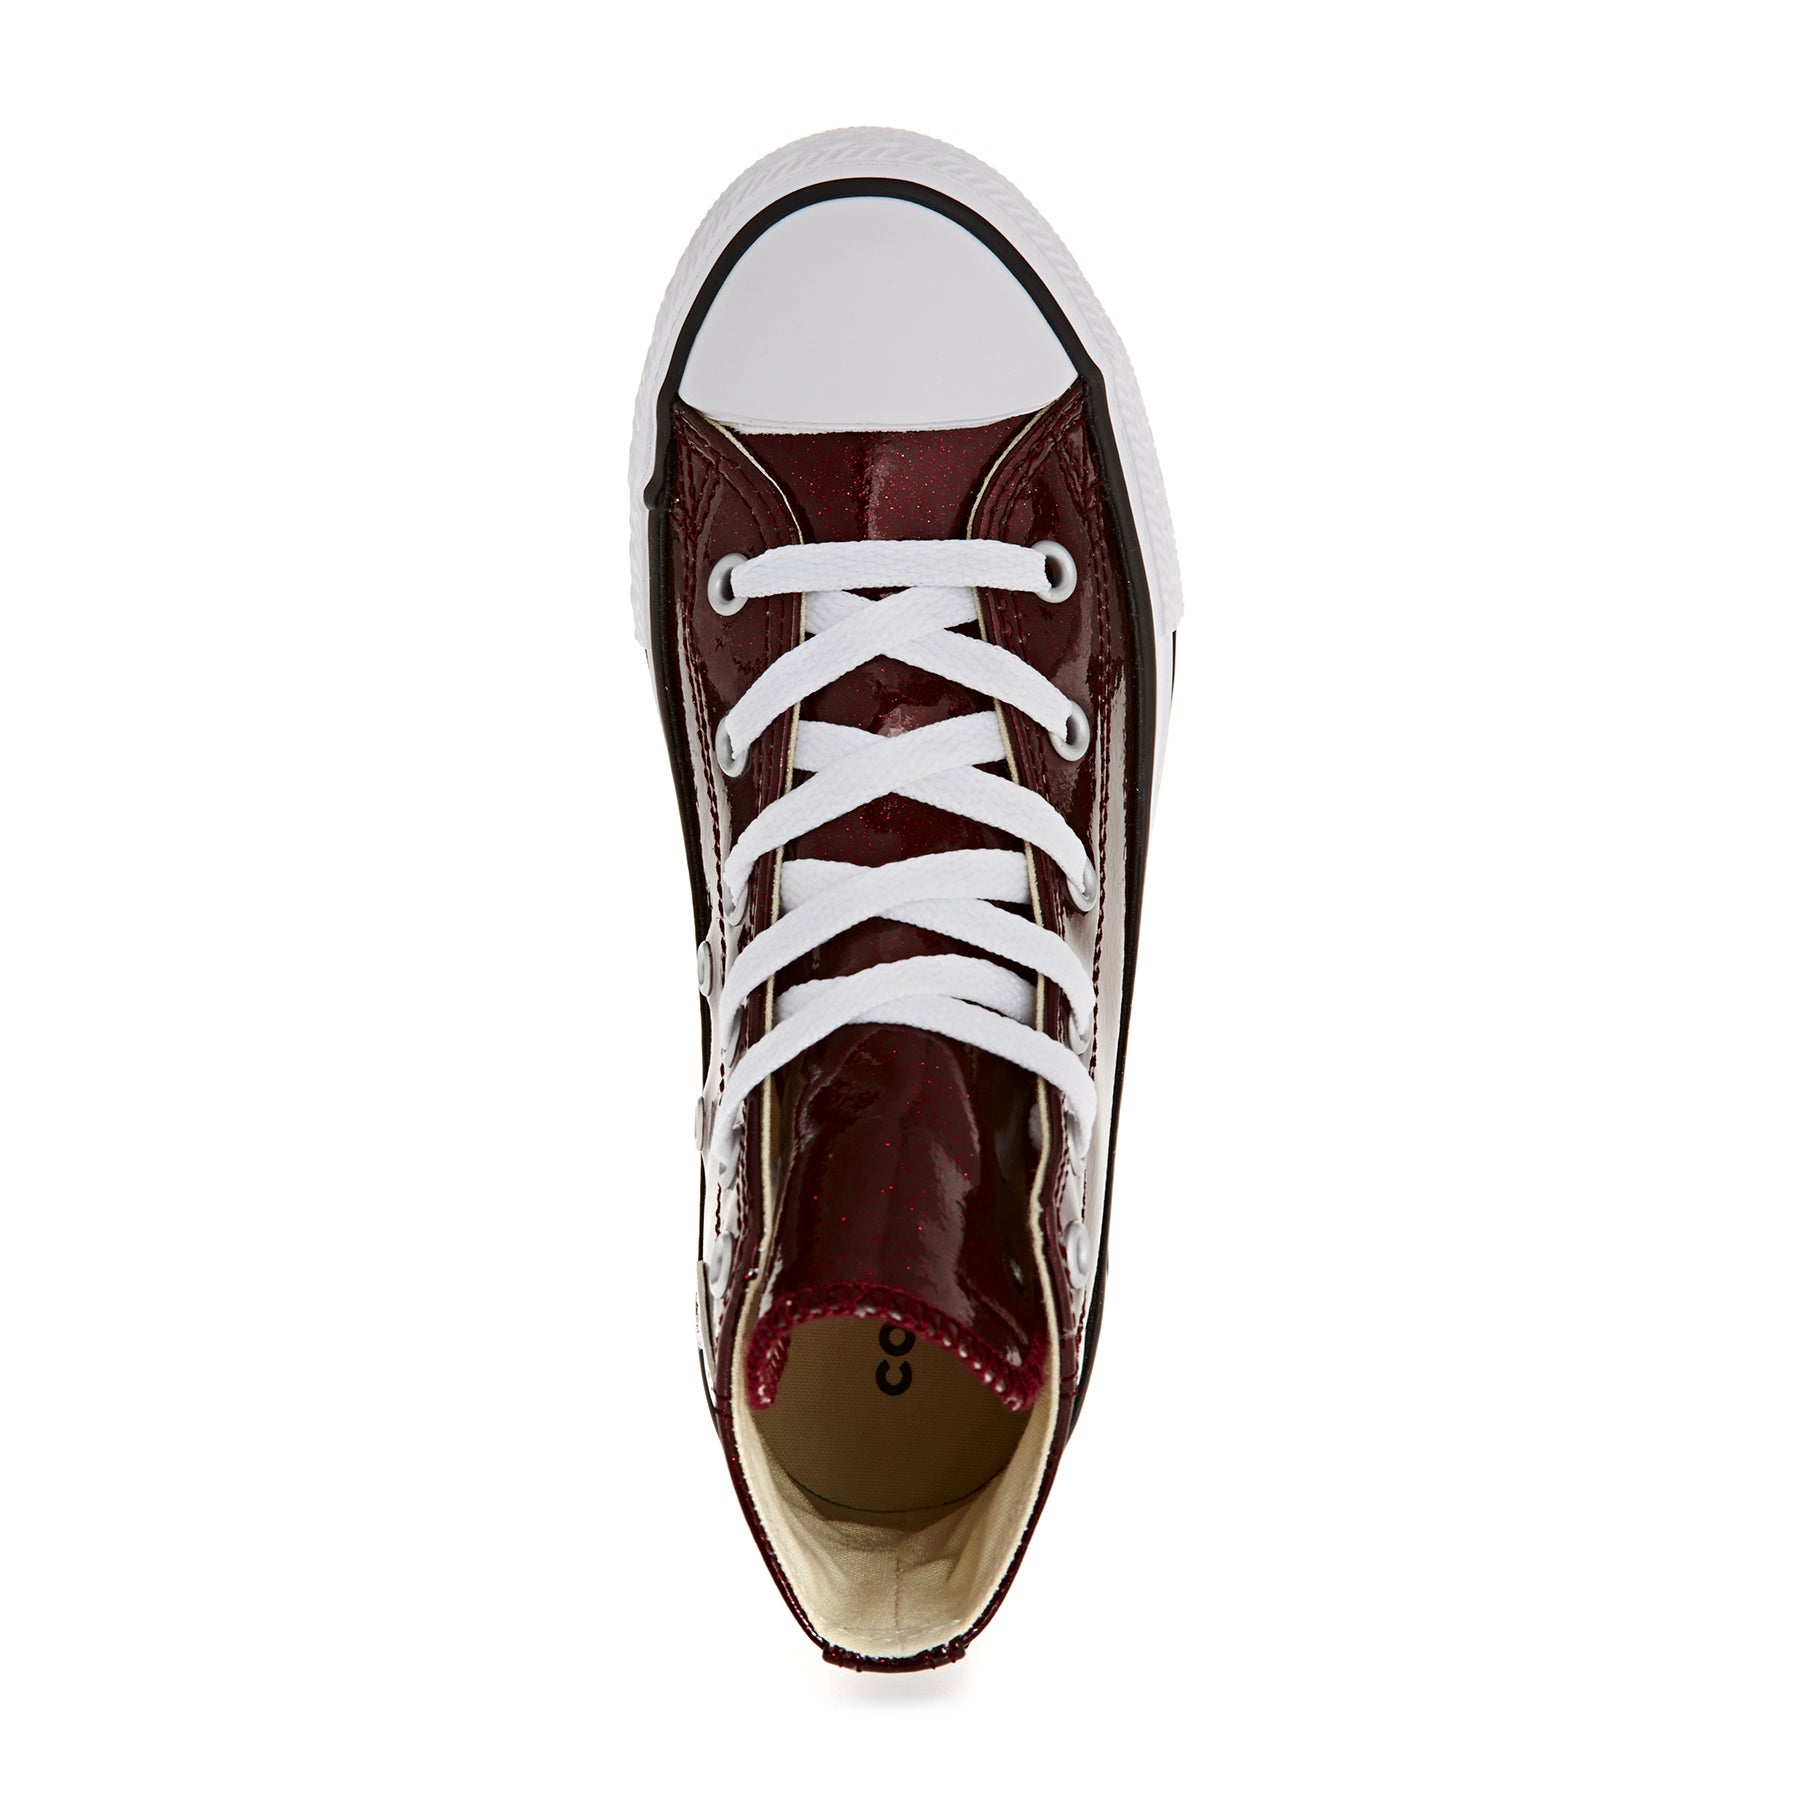 Converse Chuck Taylor All Star Youth Classic Hi Canvas Shoes